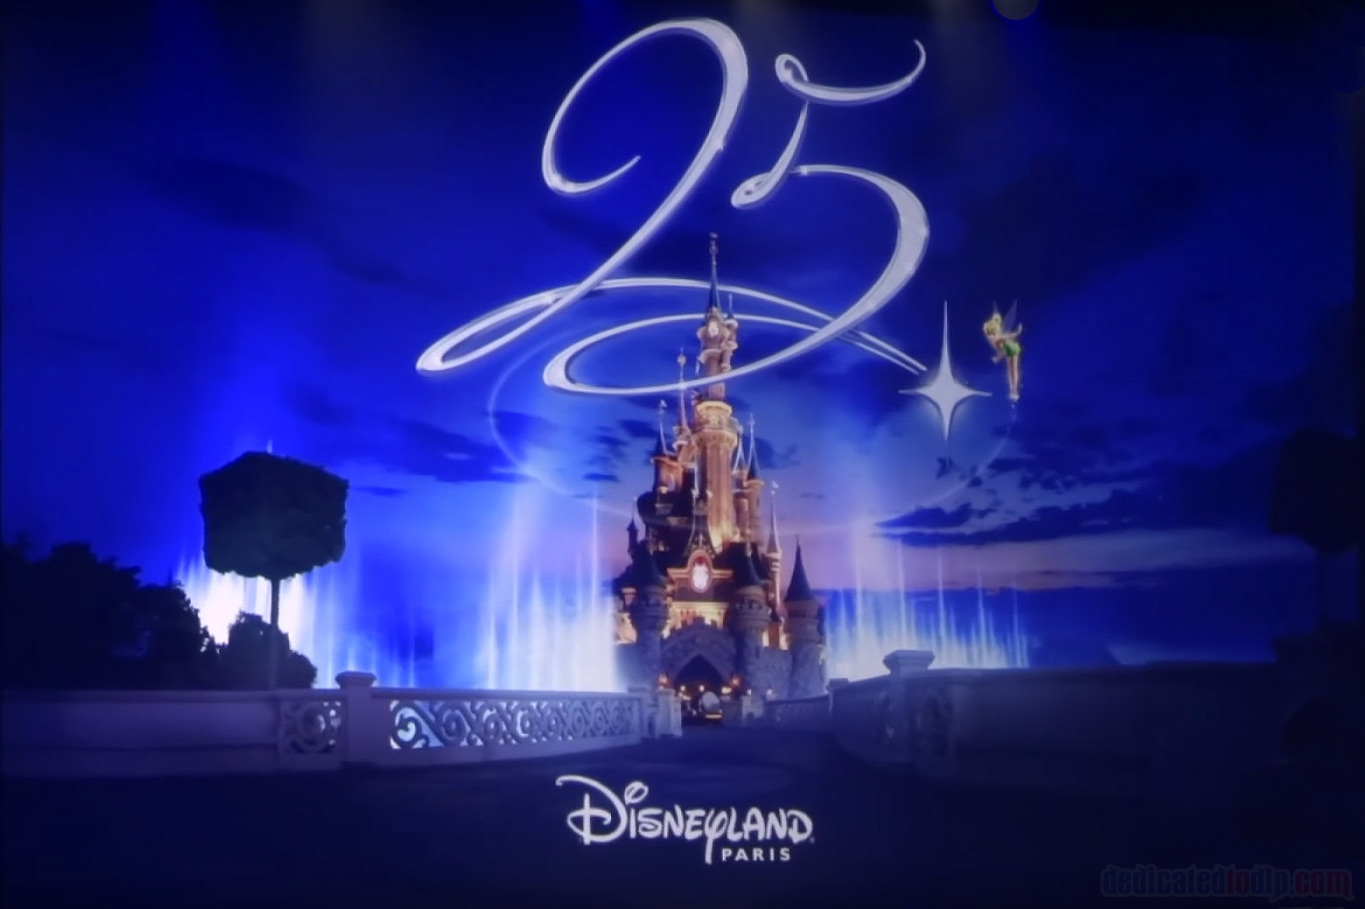 disneyland-paris-25-logo